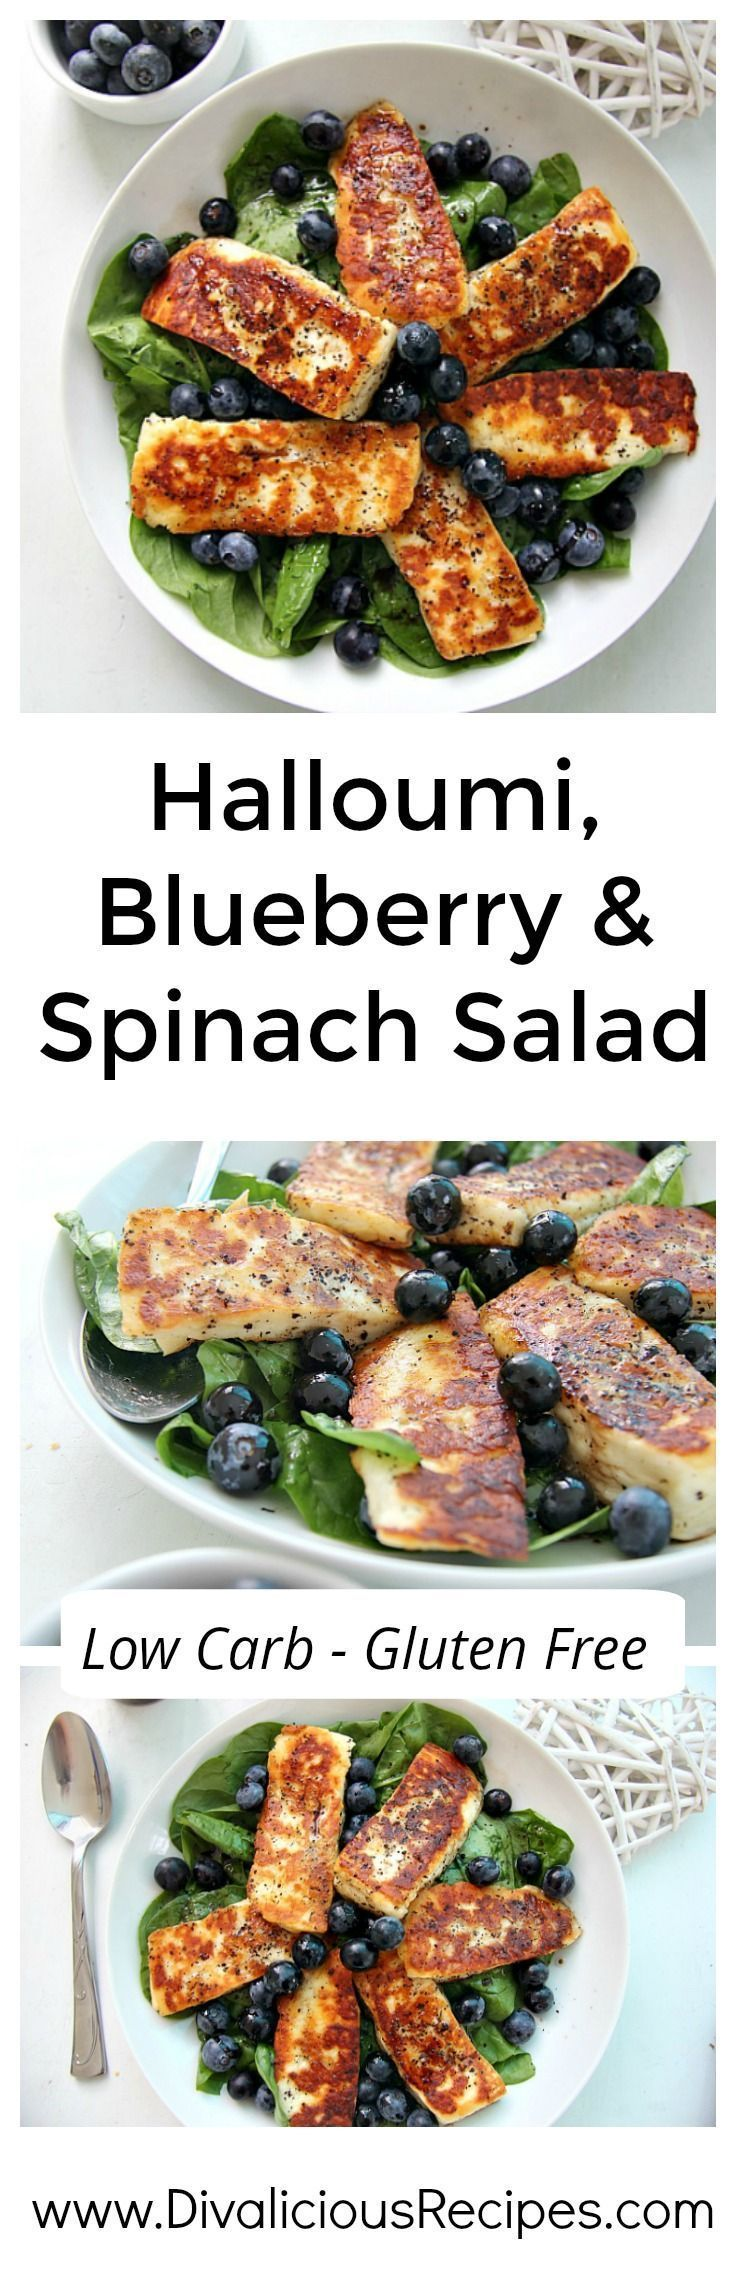 A vibrant Halloumi salad with blueberries and spinach that is a contrast of textures and flavours. Bright colours and rich tastes combine for a hearty dish.  Recipe - http://divaliciousrecipes.com/2017/05/28/halloumi-blueberry-spinach-salad/